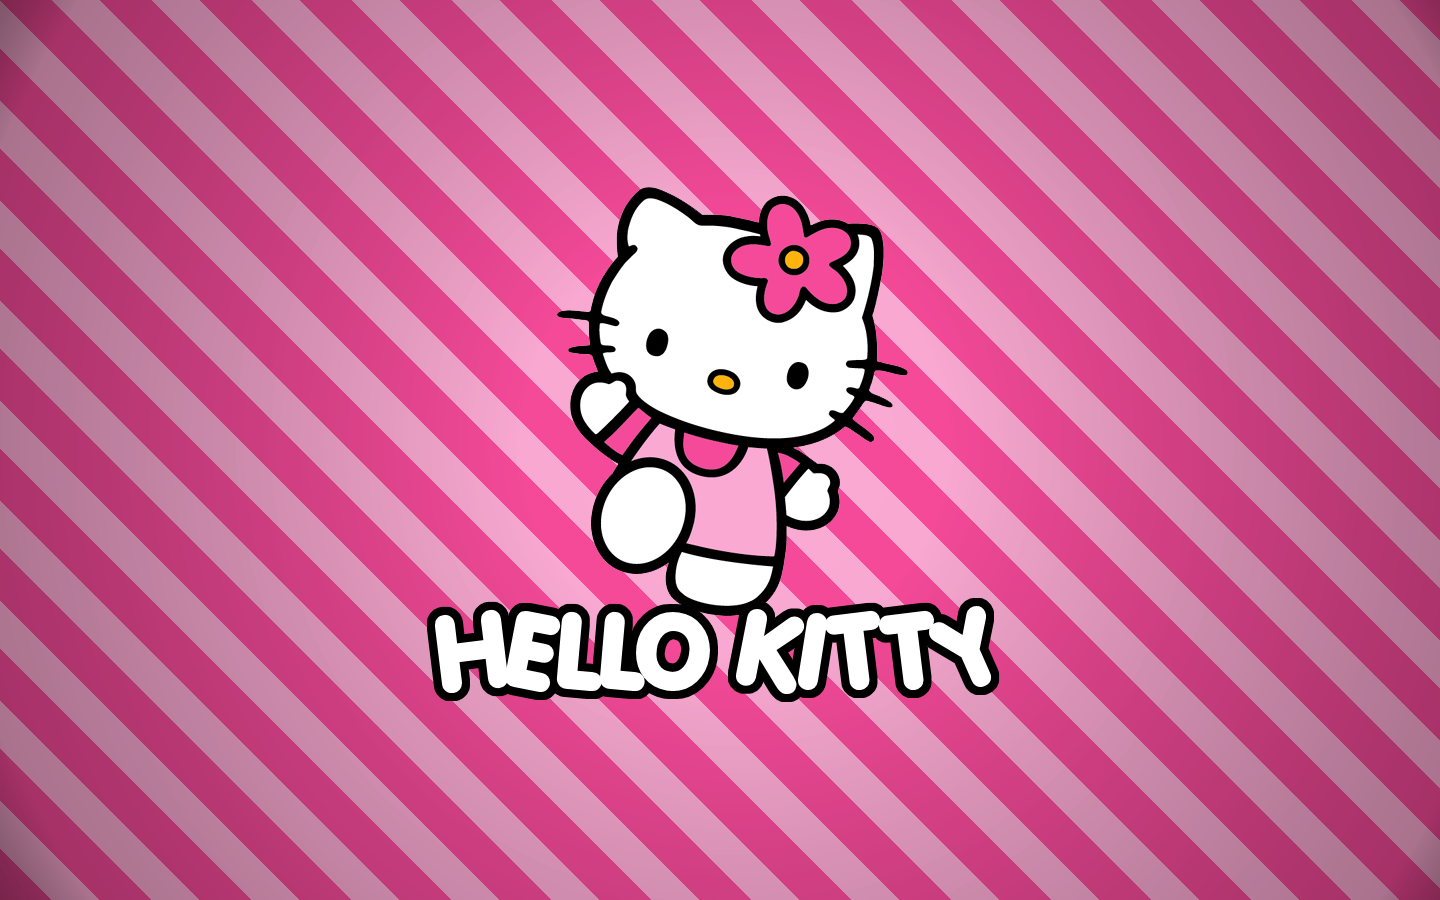 ol Kt Wallpapers Hello Kitty para PC 1440x900